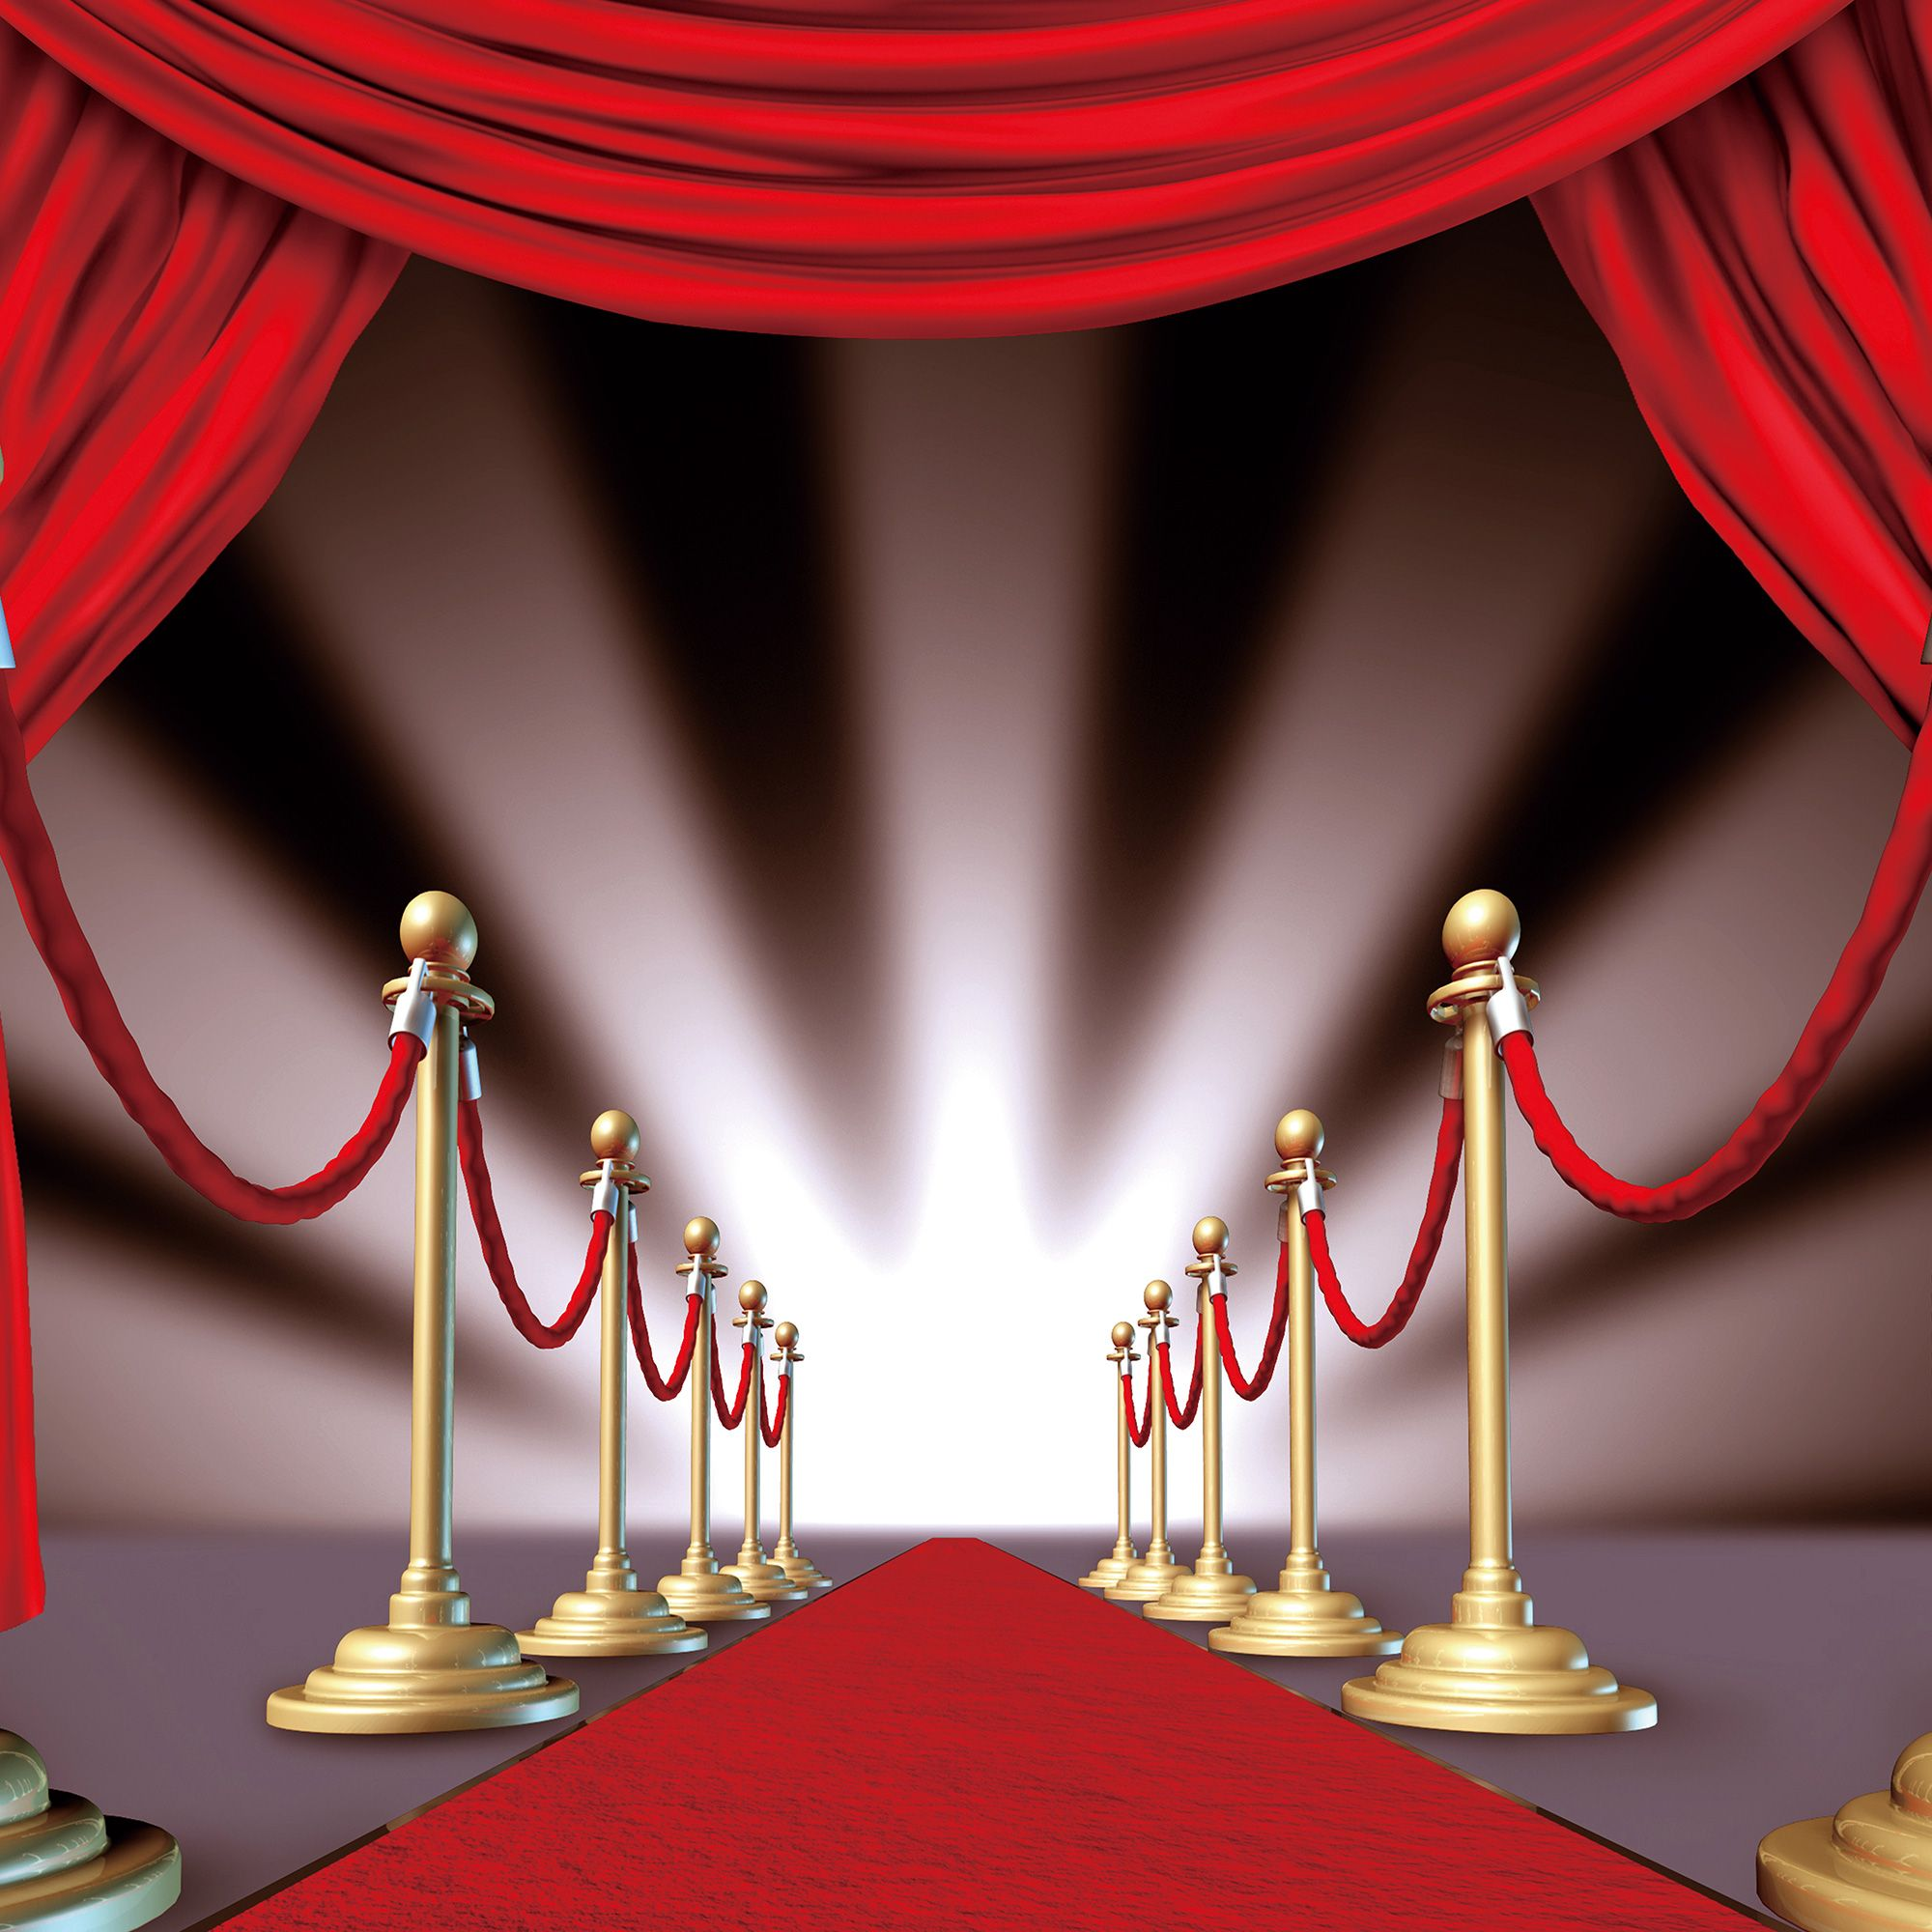 Red Carpet Stairs Star Photography Backdrop Mme 10x10ft Red Curtain Background Hollywood Star Red Carpet Phot Studio Photography Photography Backdrop Backdrops